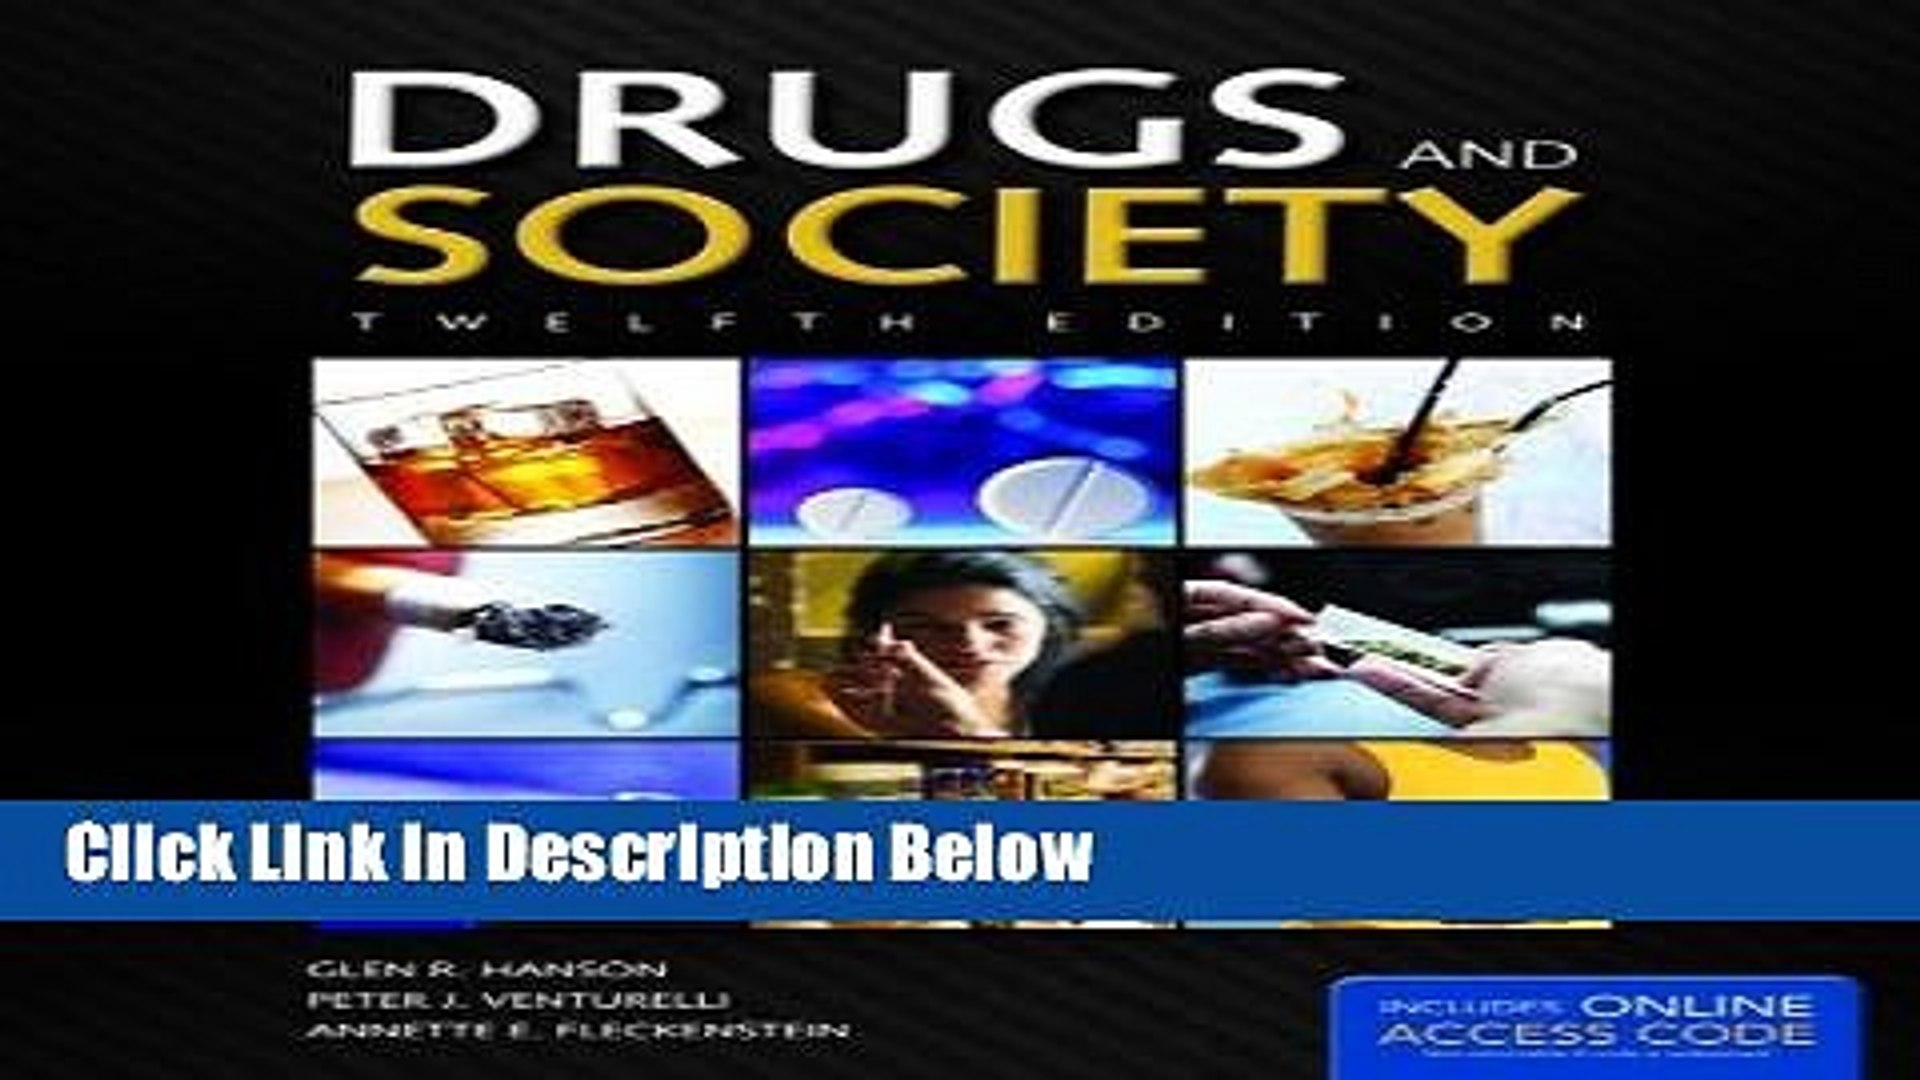 [Best Seller] Drugs And Society (Hanson, Drugs and Society) New Reads